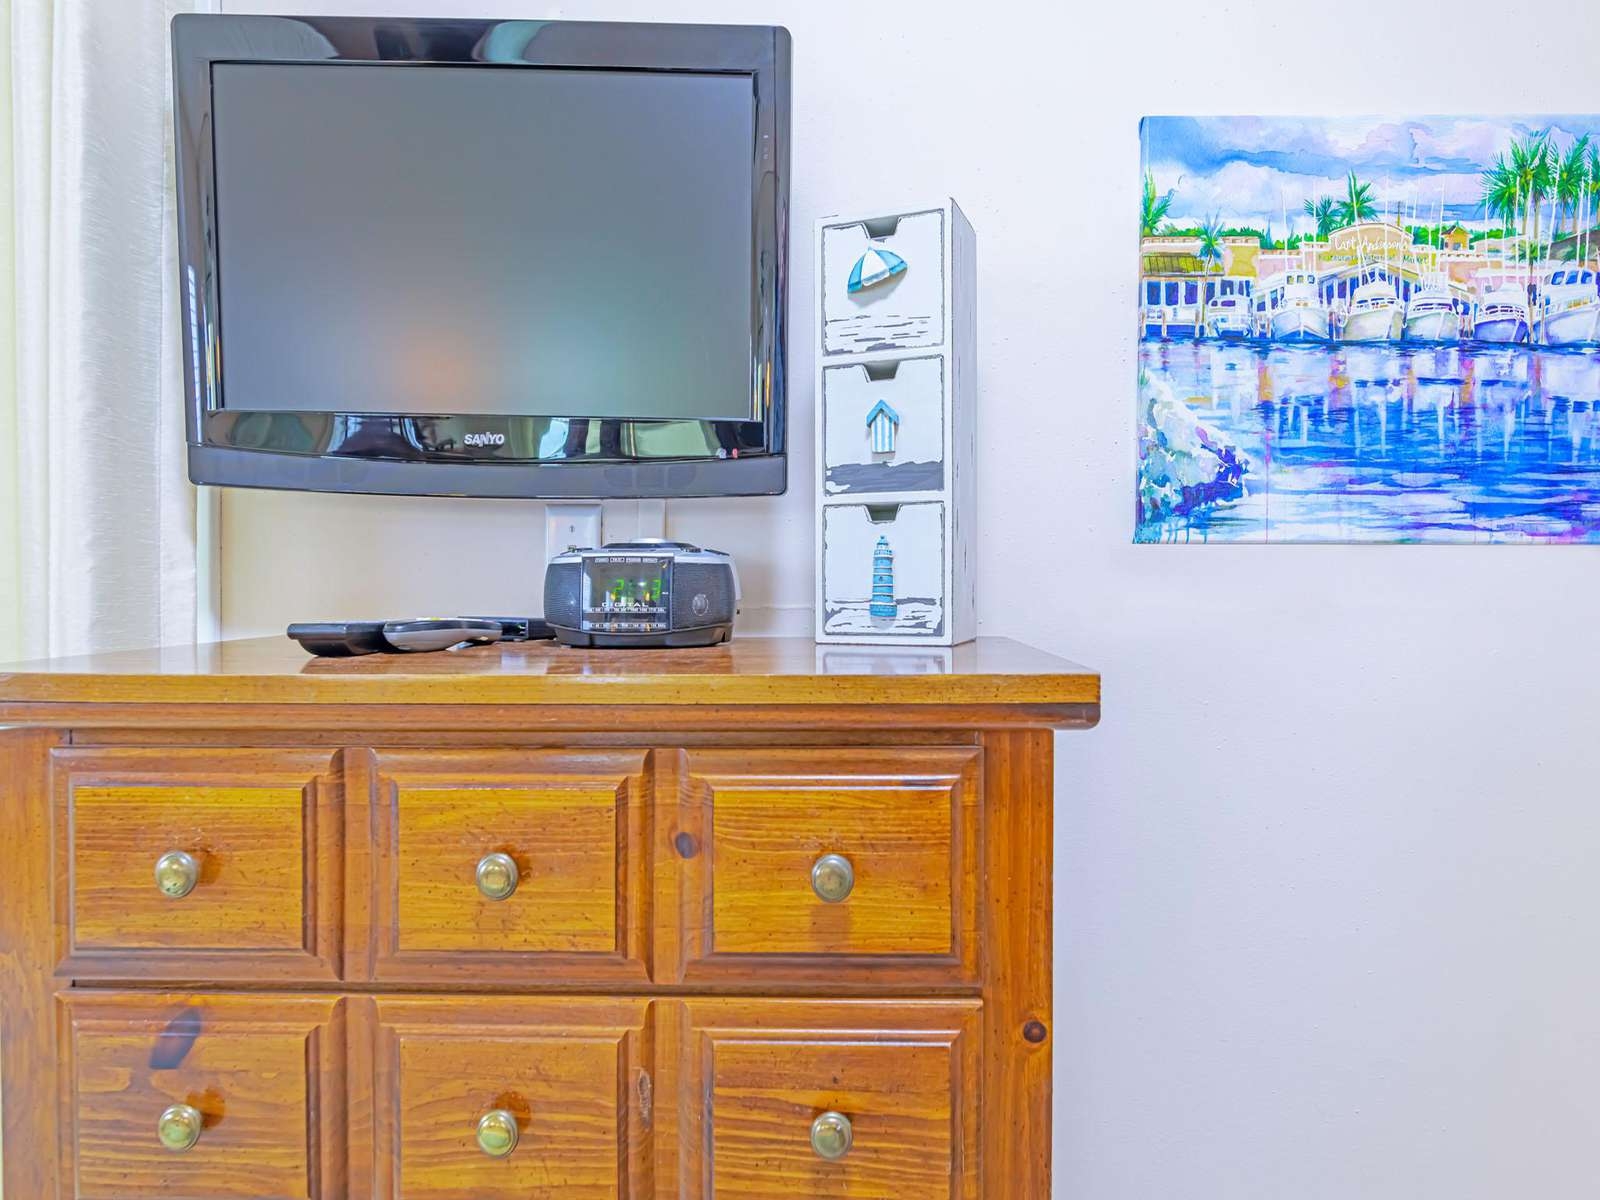 3 of 3 cable TV's!